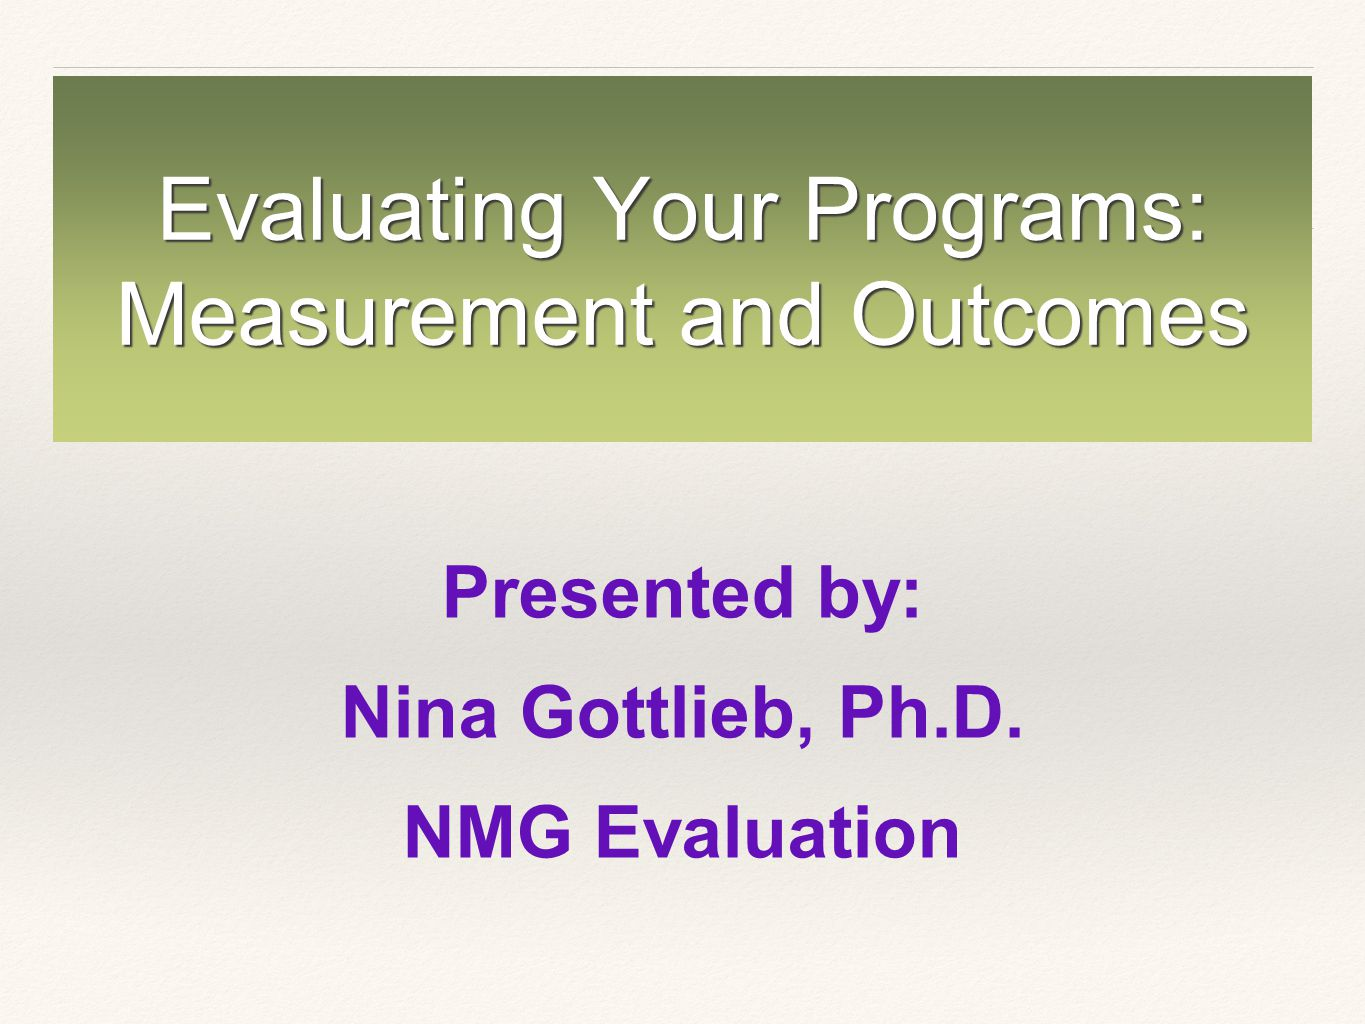 Evaluating Your Programs: Measurement and Outcomes Presented by: Nina Gottlieb, Ph.D.